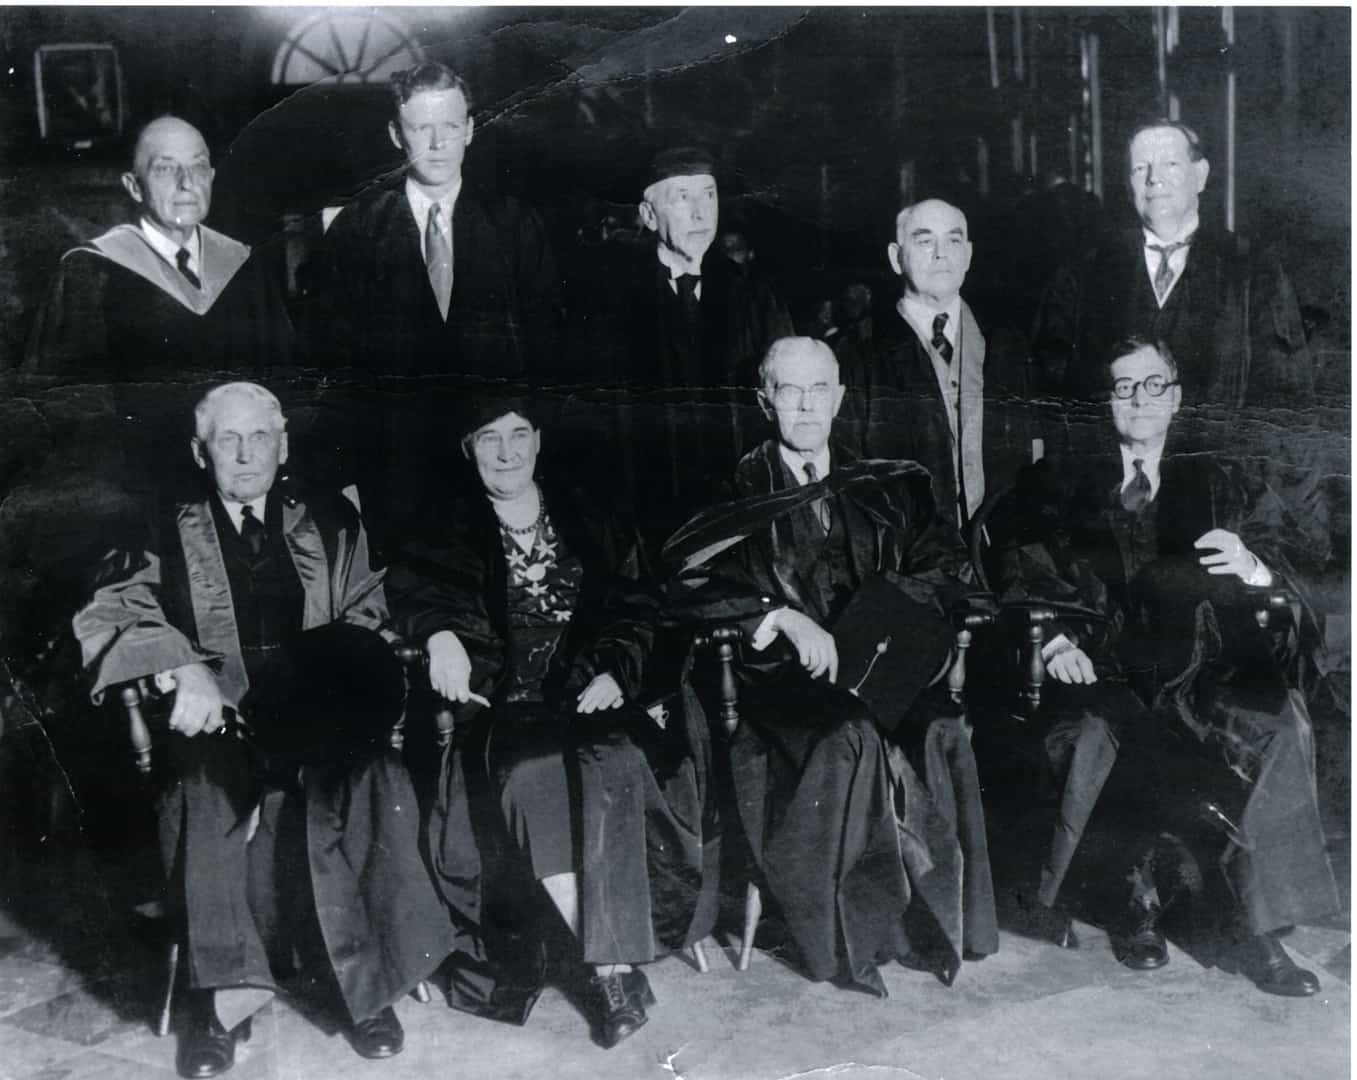 Princeton University honorary degree recipients, 1931. Aaron W. Godfrey is back row, second from right. Other recipients include Charles Lindbergh (back row, second from left) and Willa Cather (front row).